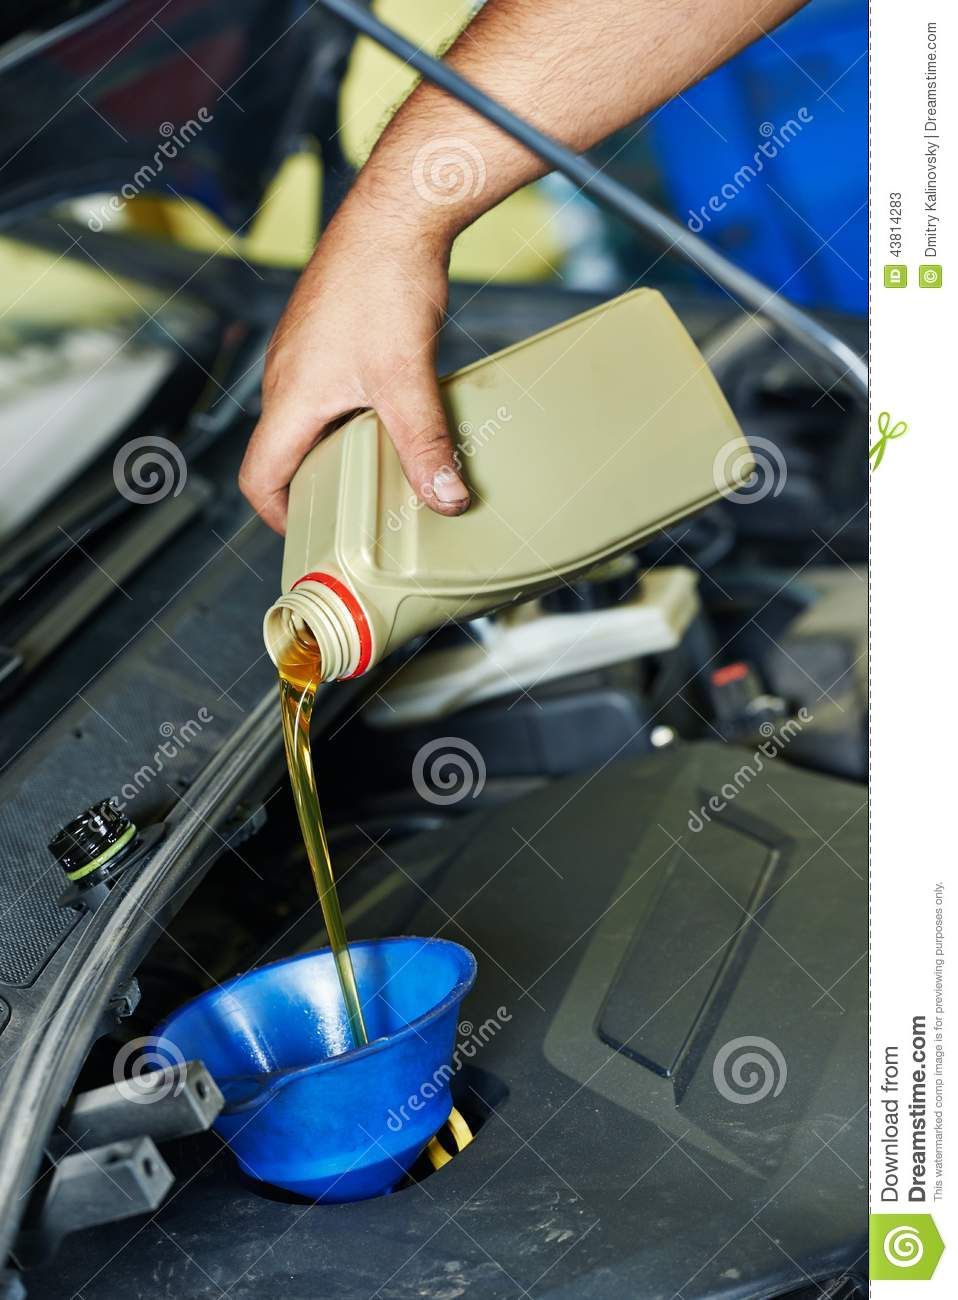 Car mechanic pouring oil into motor engine stock image for Motor vehicle repair license